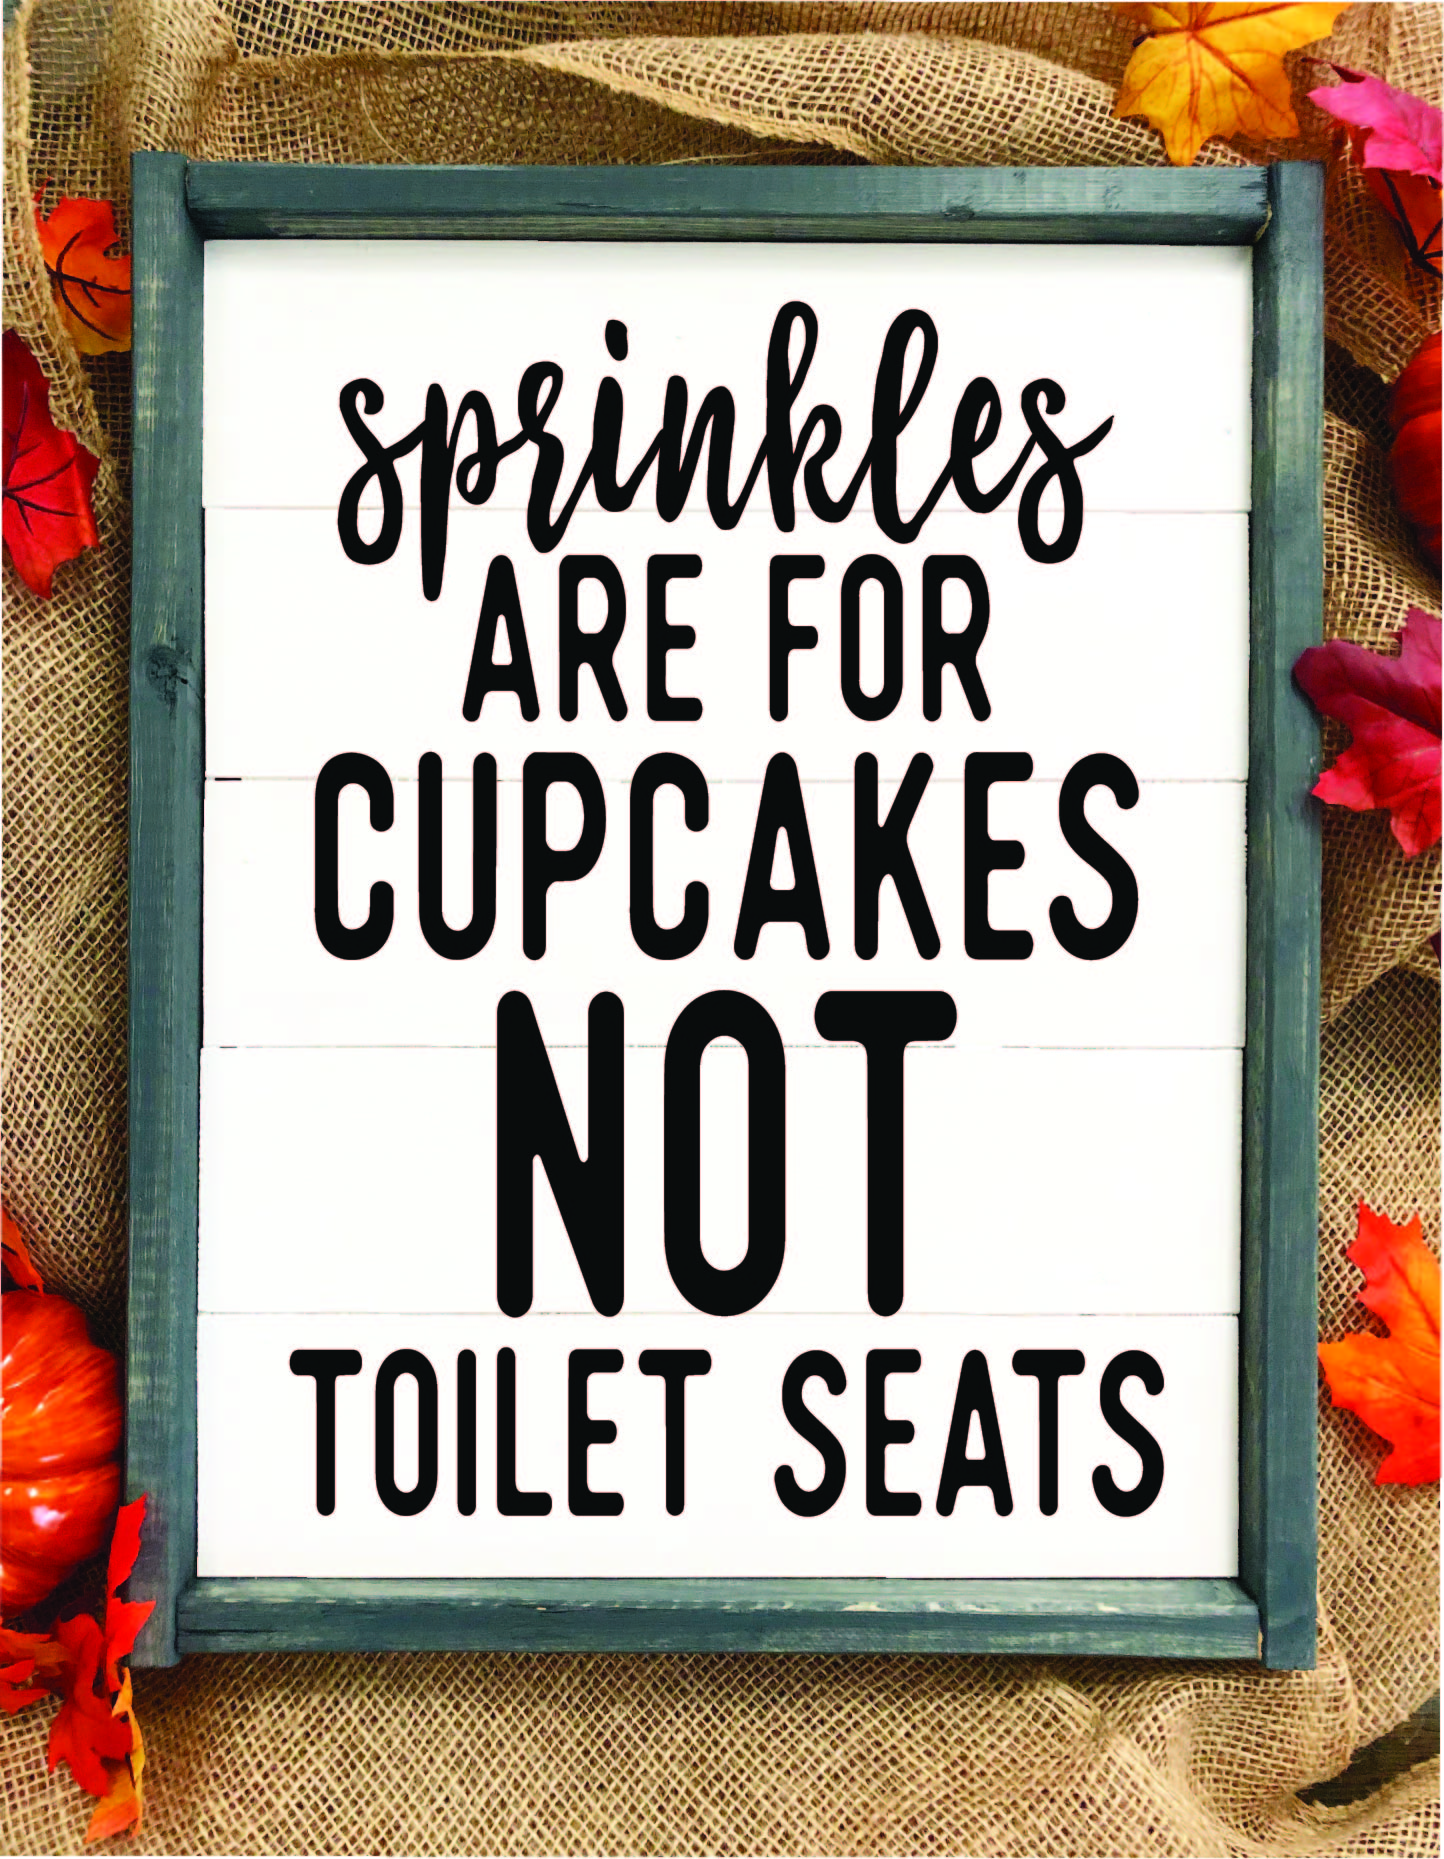 Sprinkles are for cupcakes.jpg